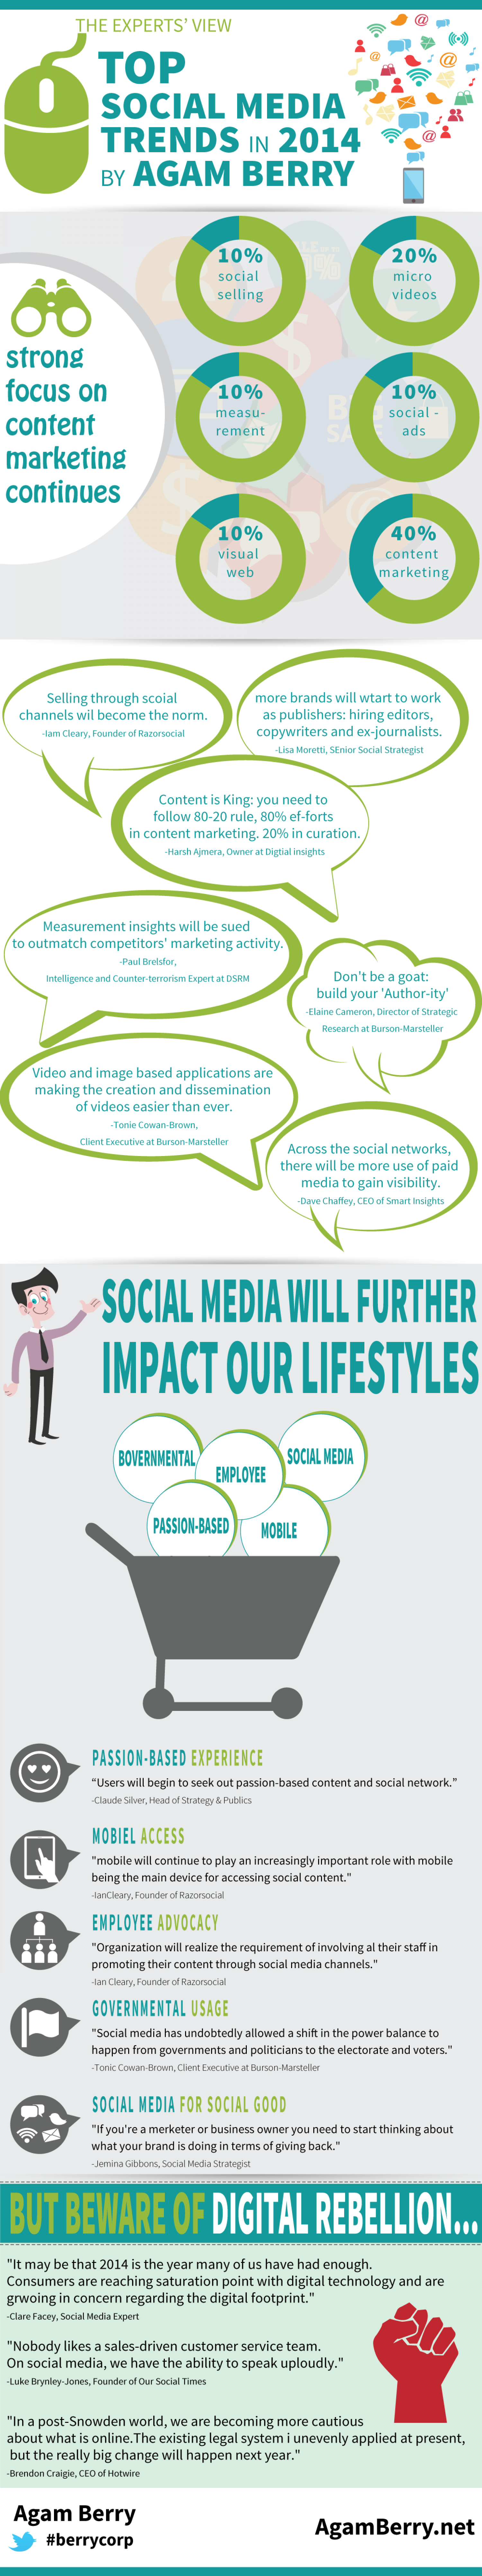 Top Social Media Trends in 2014 by Agam Berry Infographic